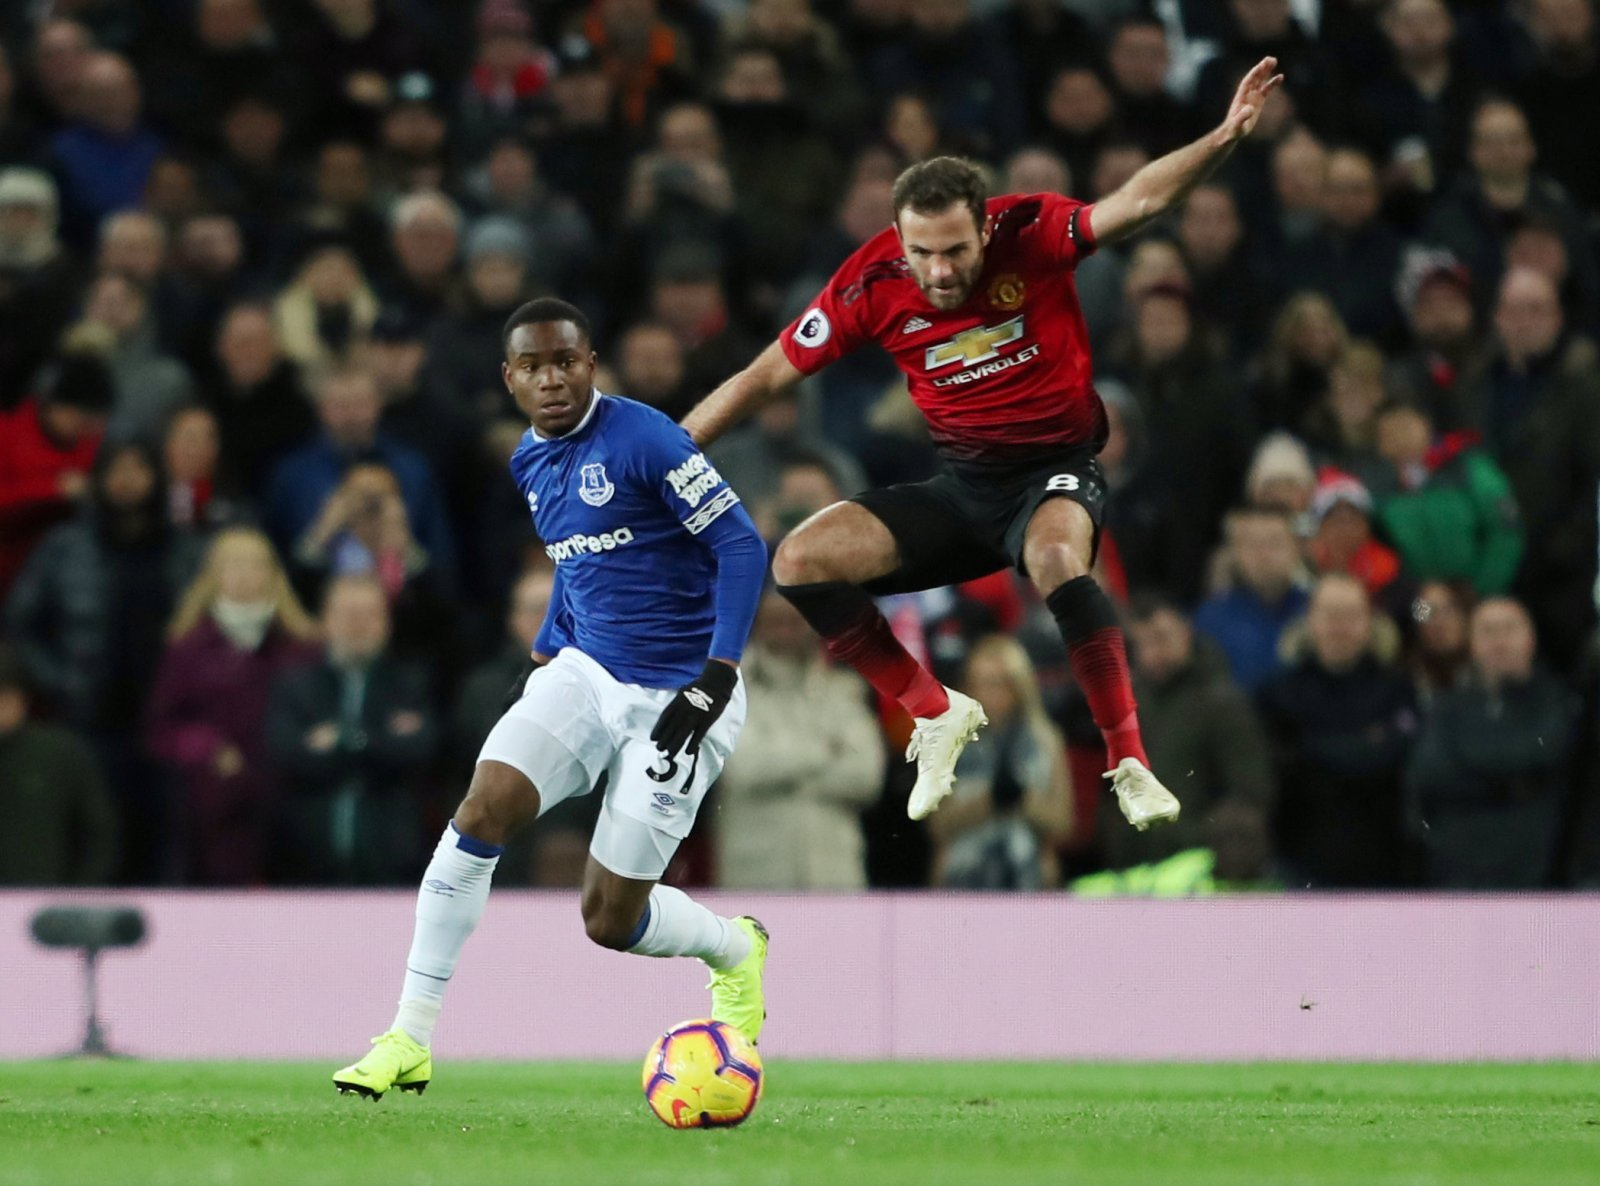 Everton could offer Lookman for Wan-Bissaka